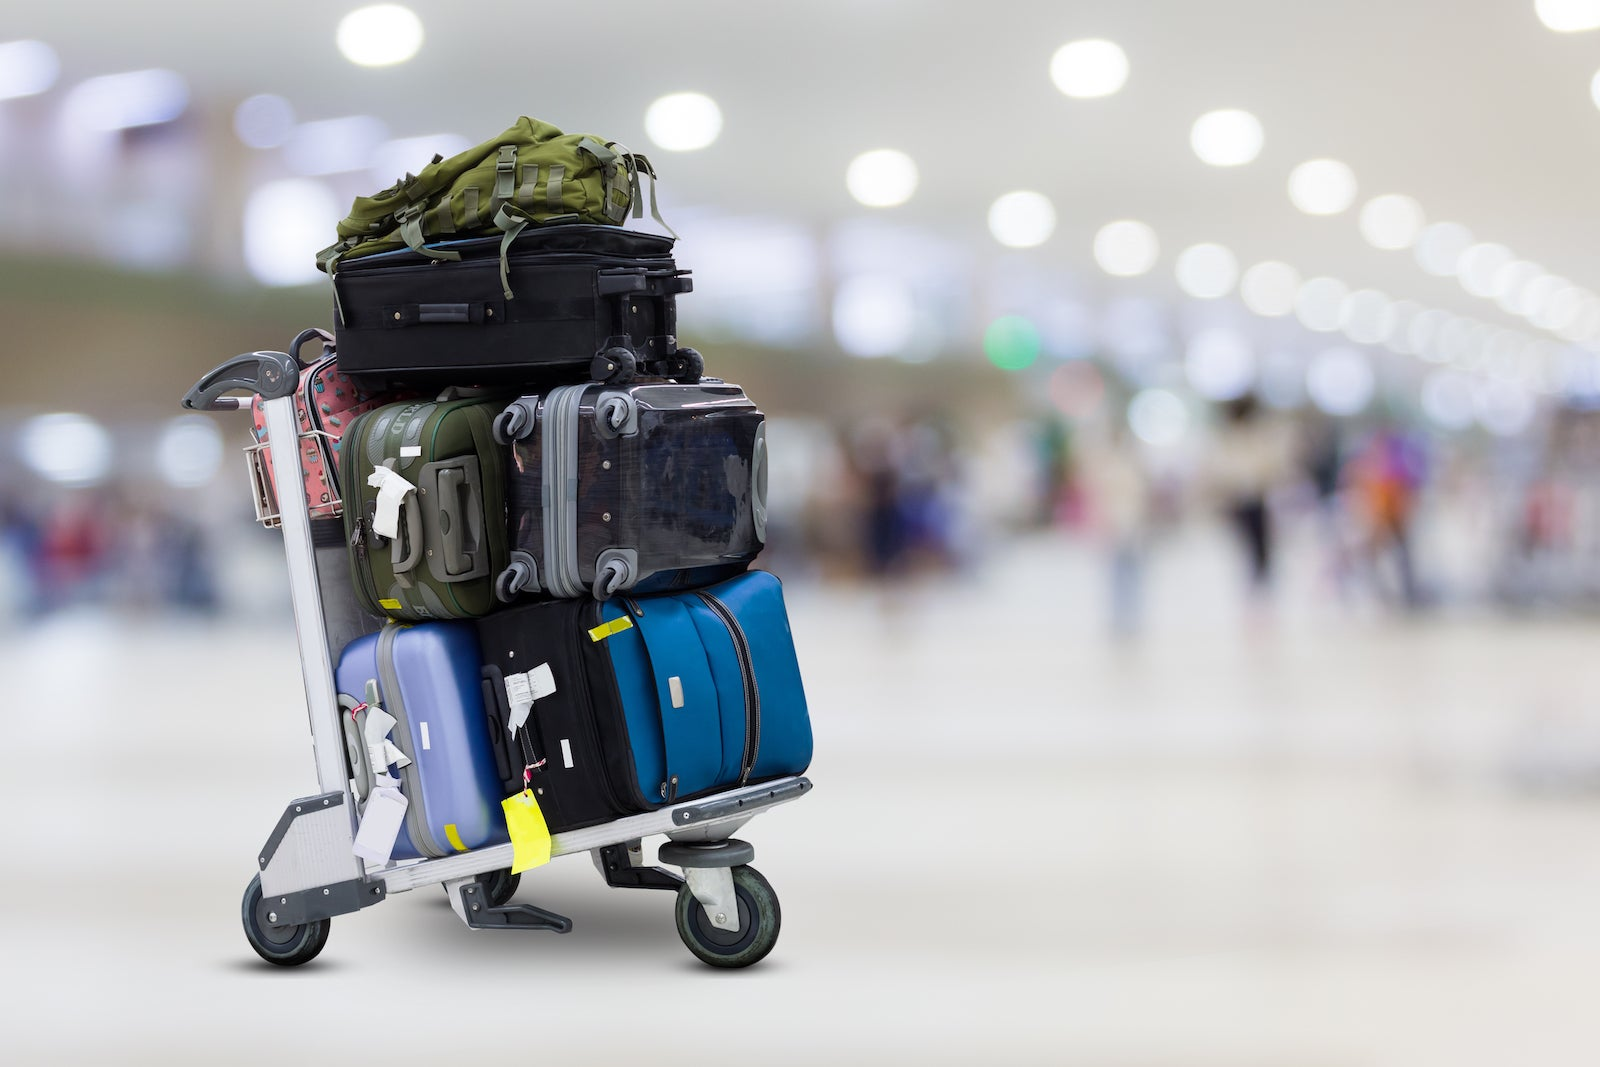 Never pay extra again: 6 ways to avoid checked baggage fees (Save $60 or more round-trip)